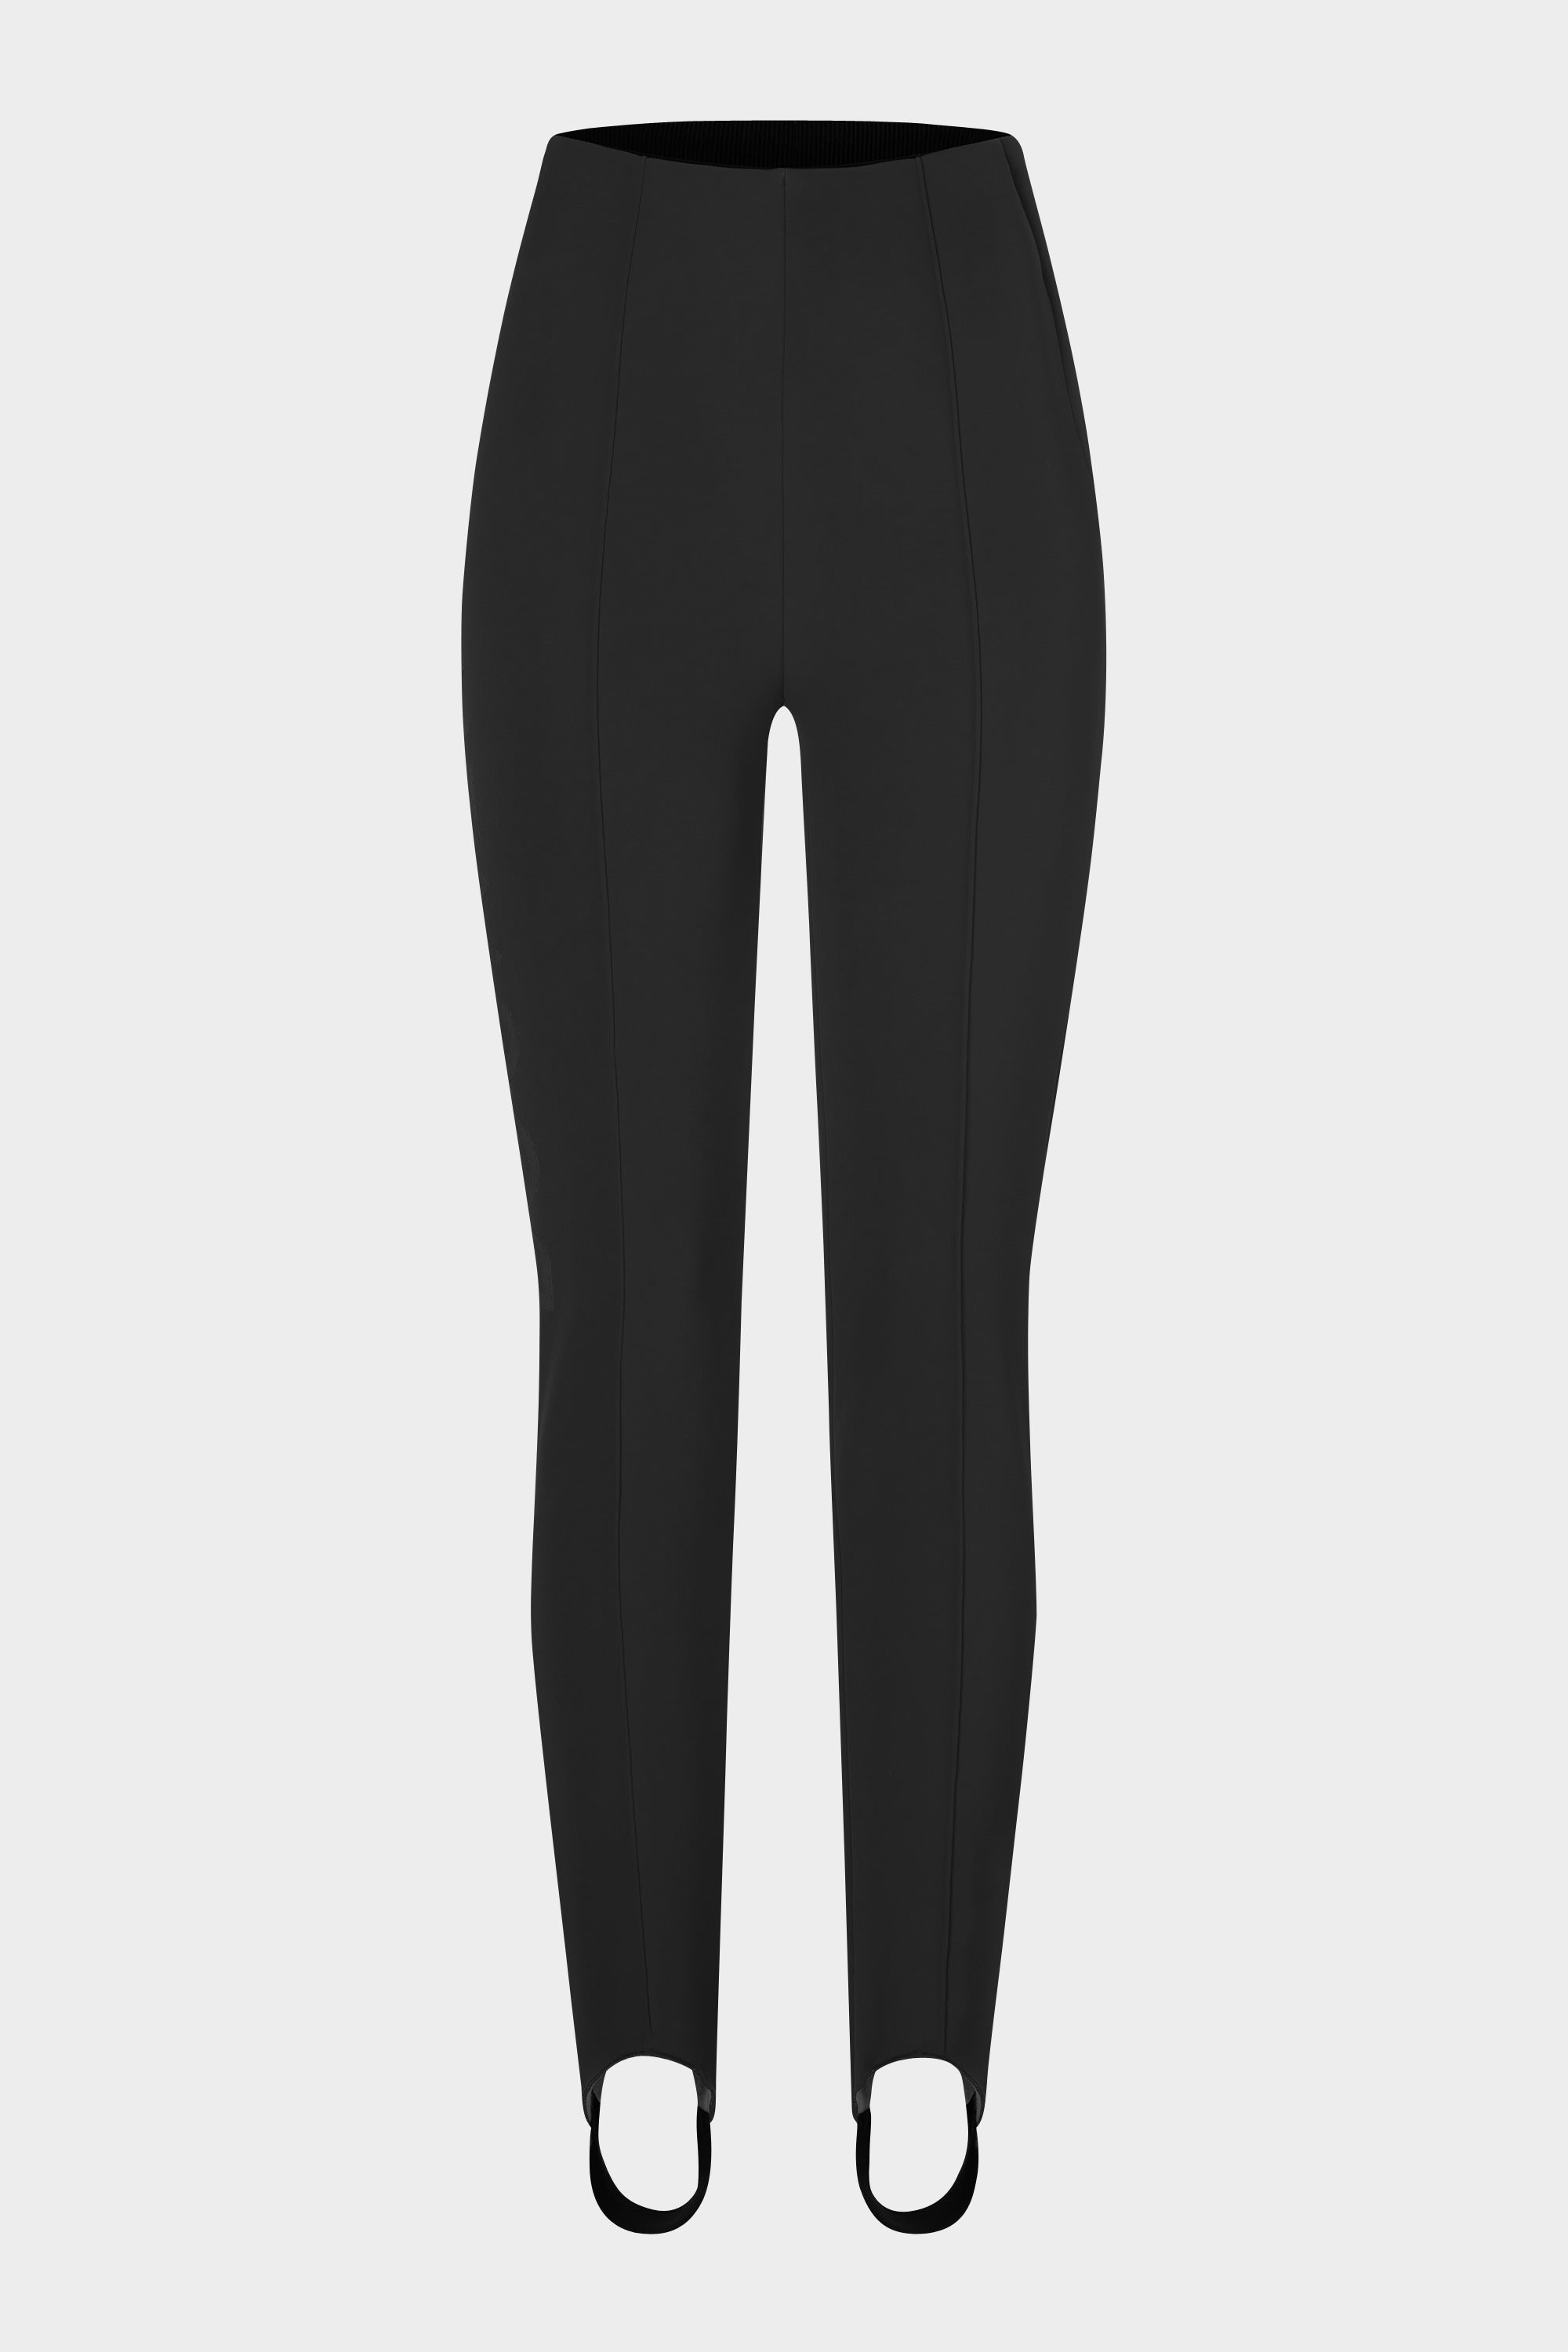 ELAINE in boots legging with Bogner logo - black